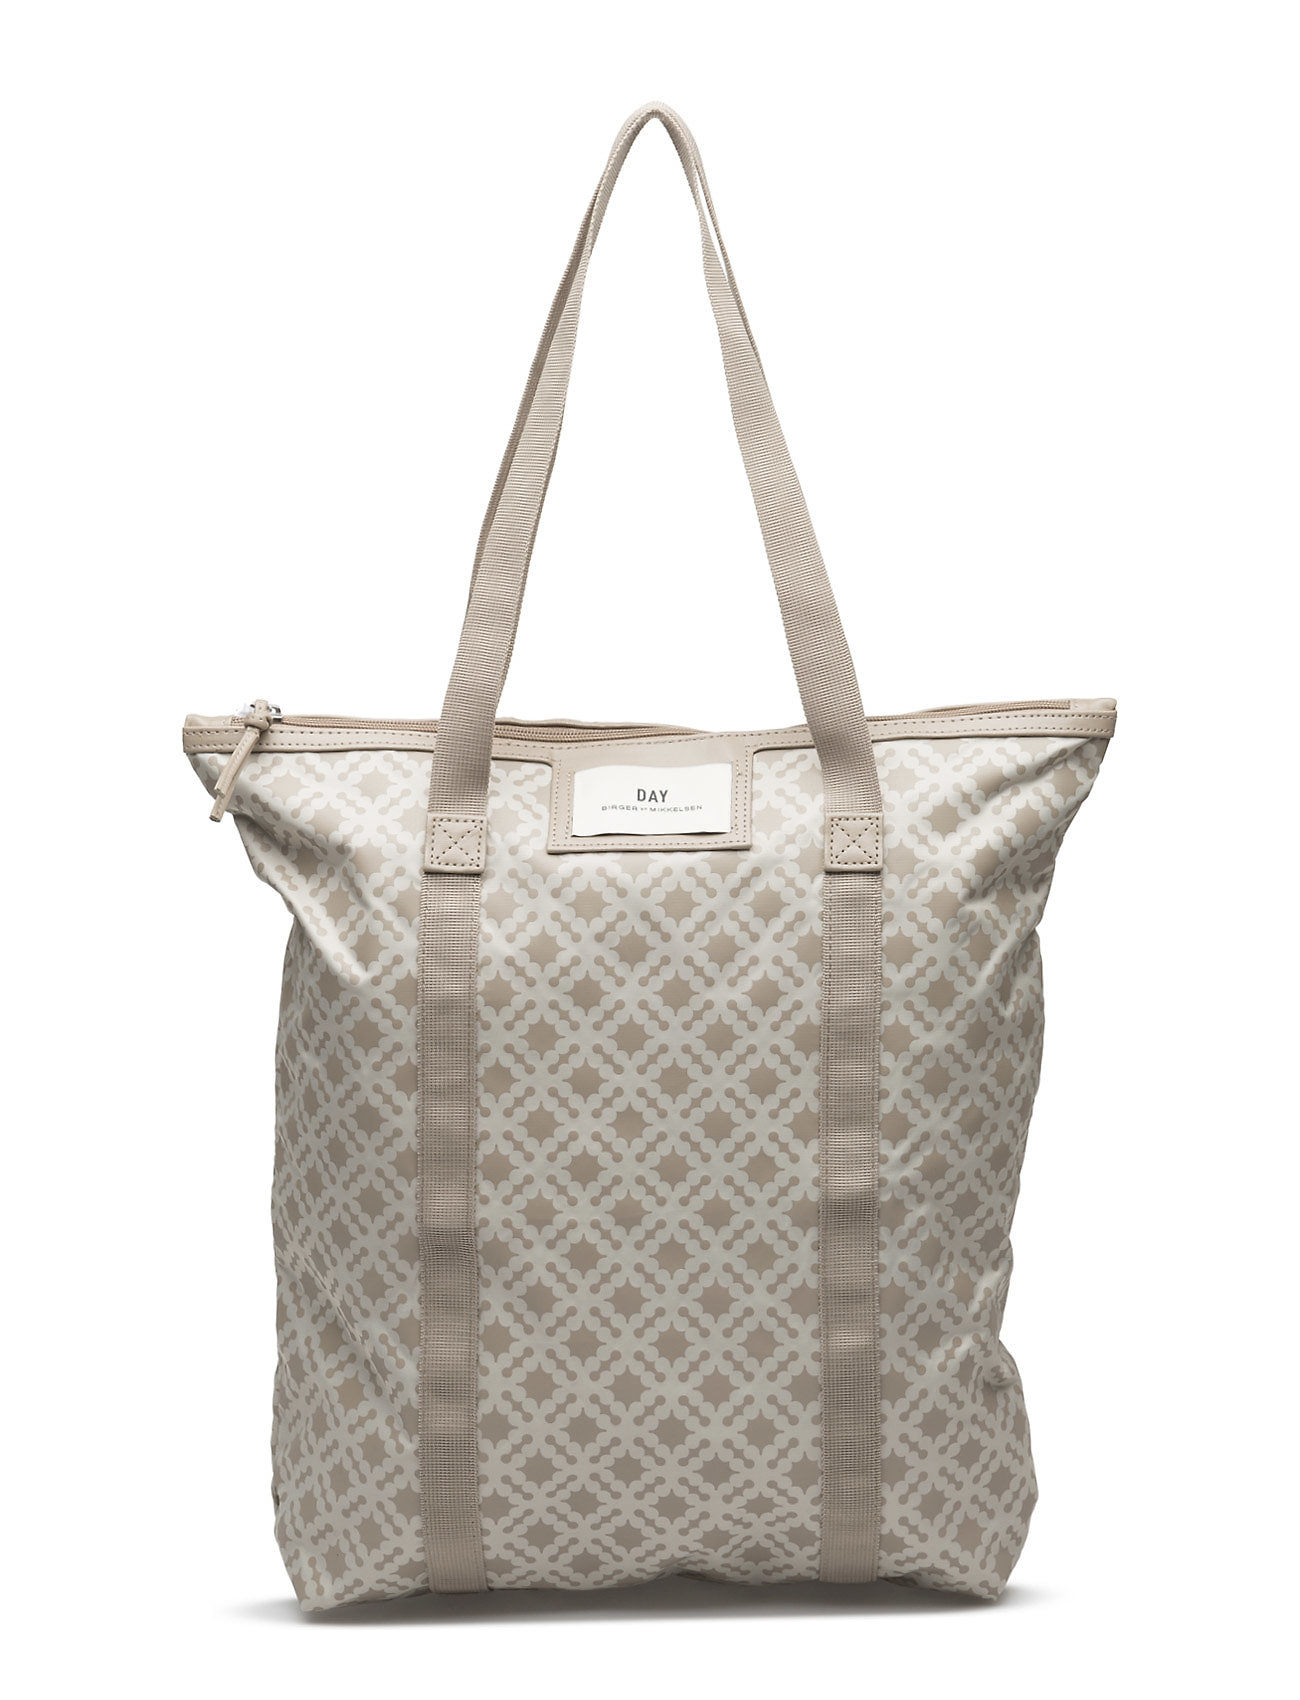 DAY et Day Gweneth P Linger Tote